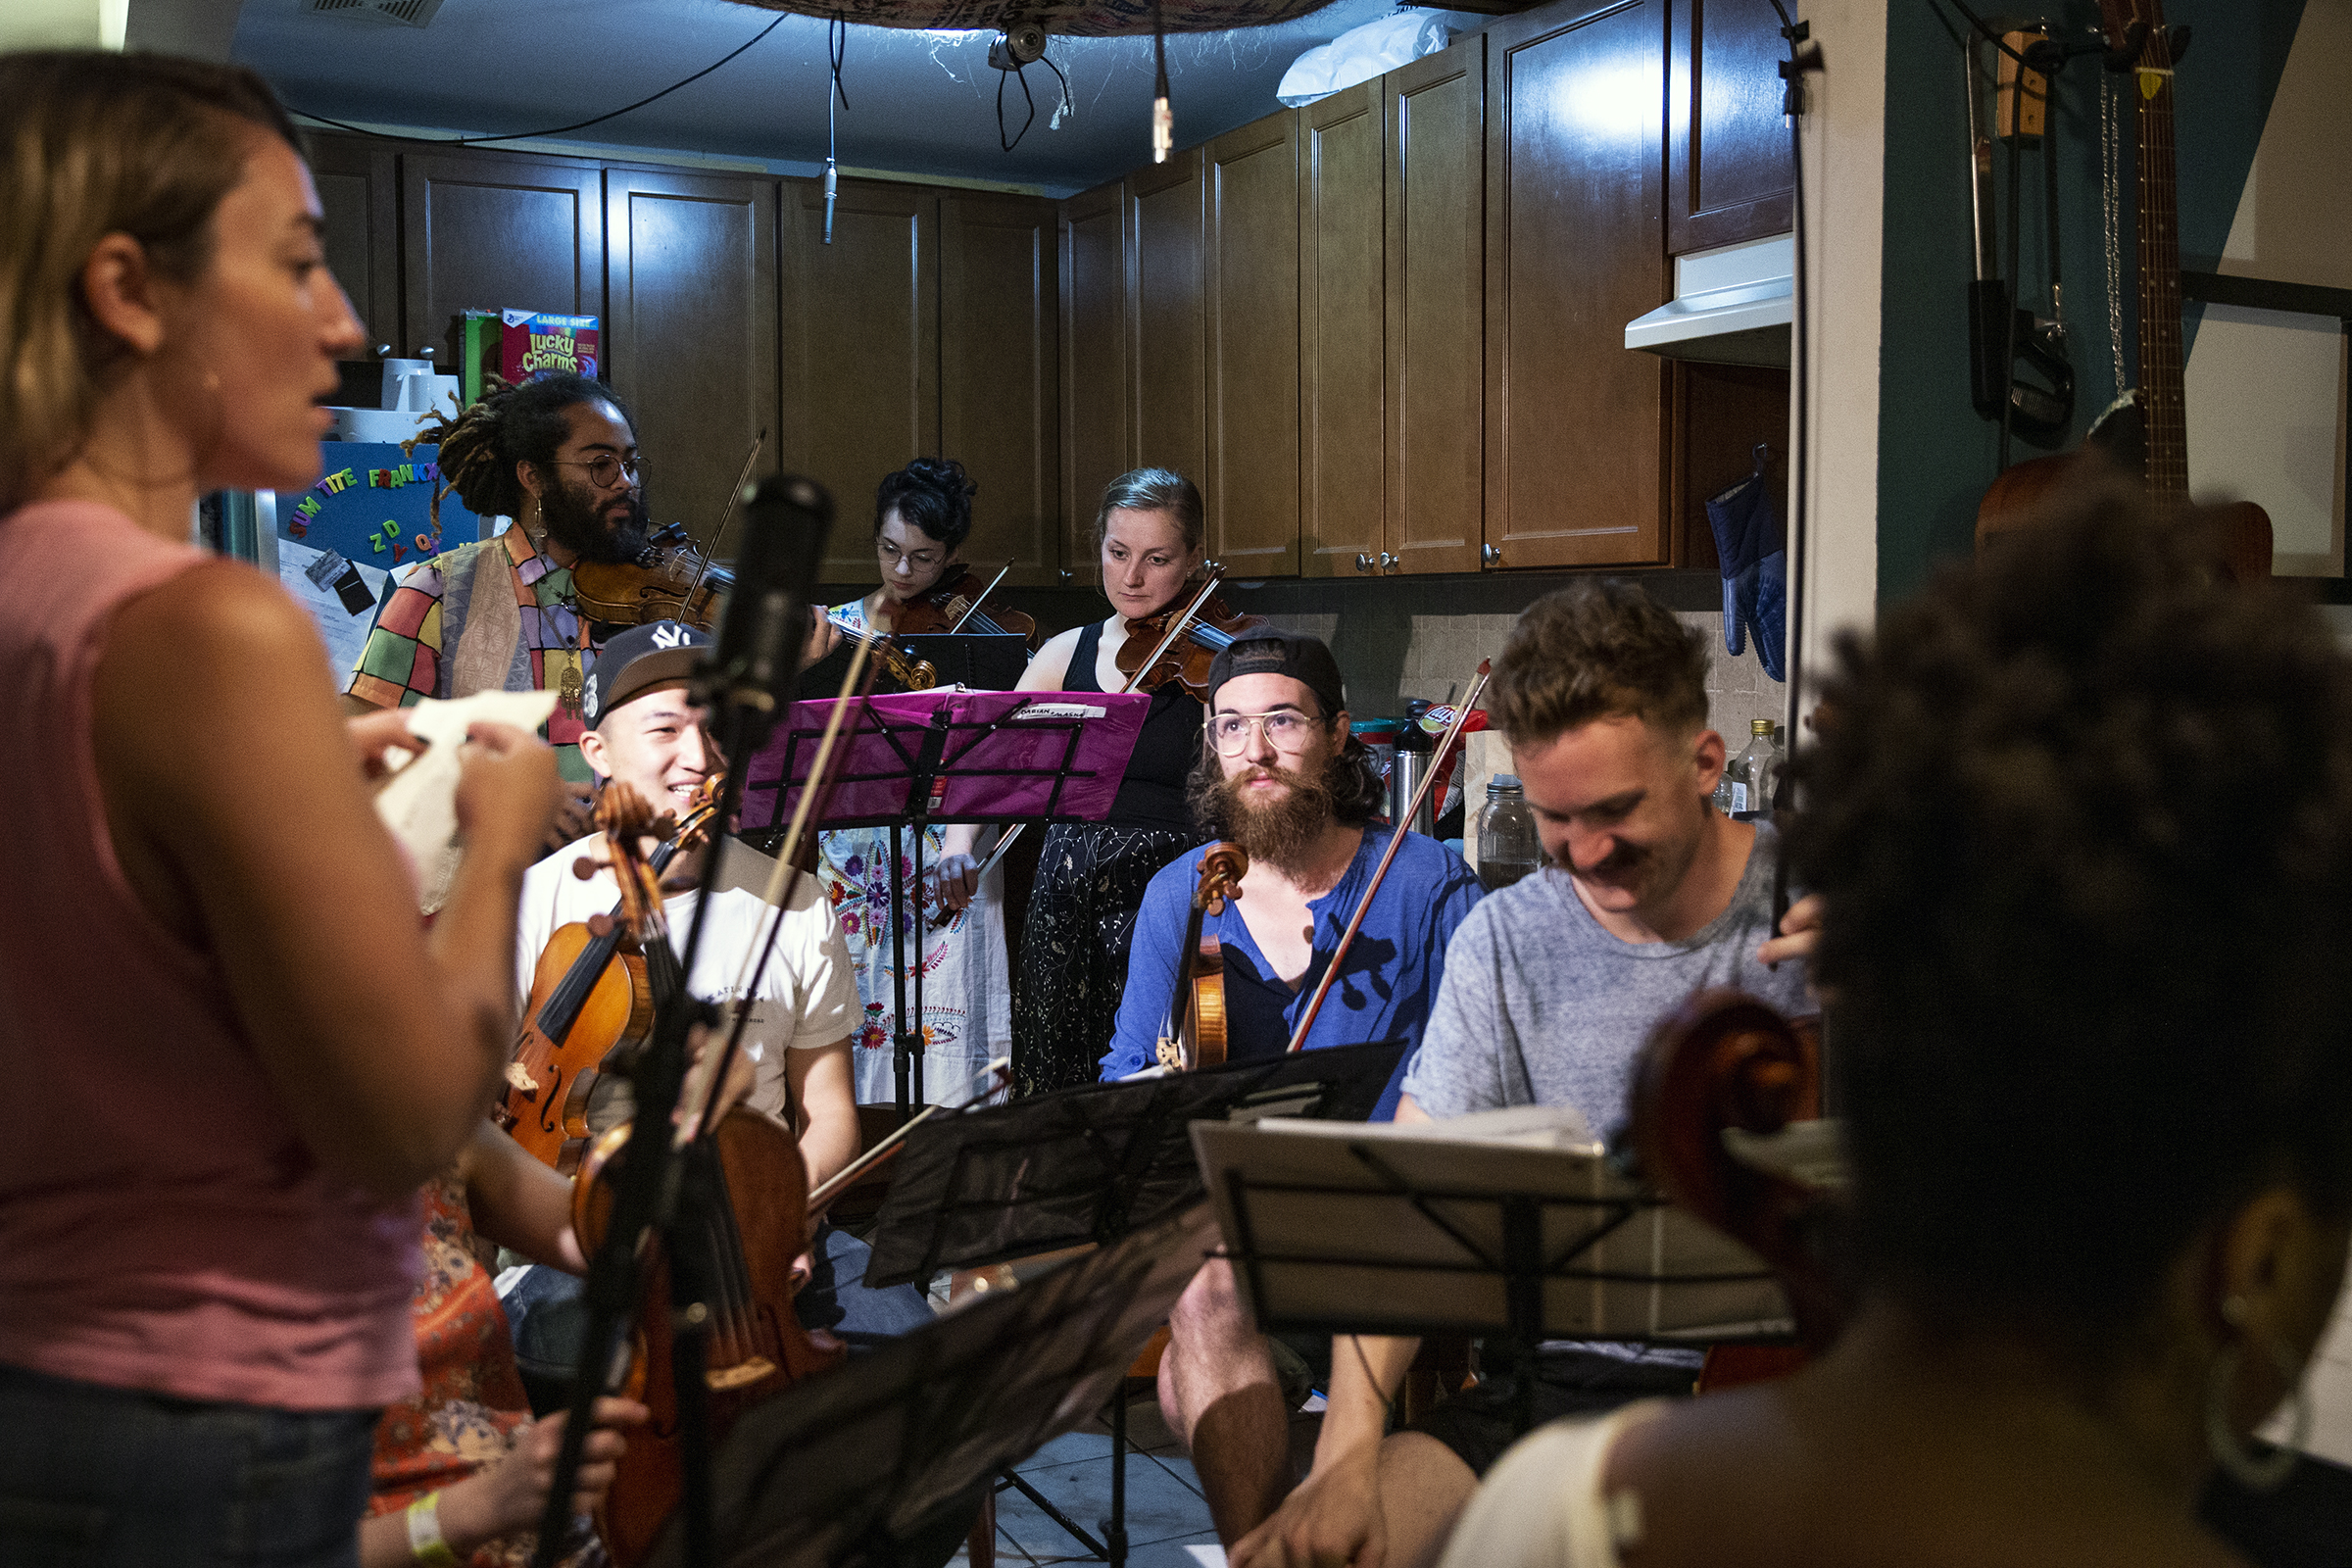 Centered around building a strong, diverse community through music and collaboration. -